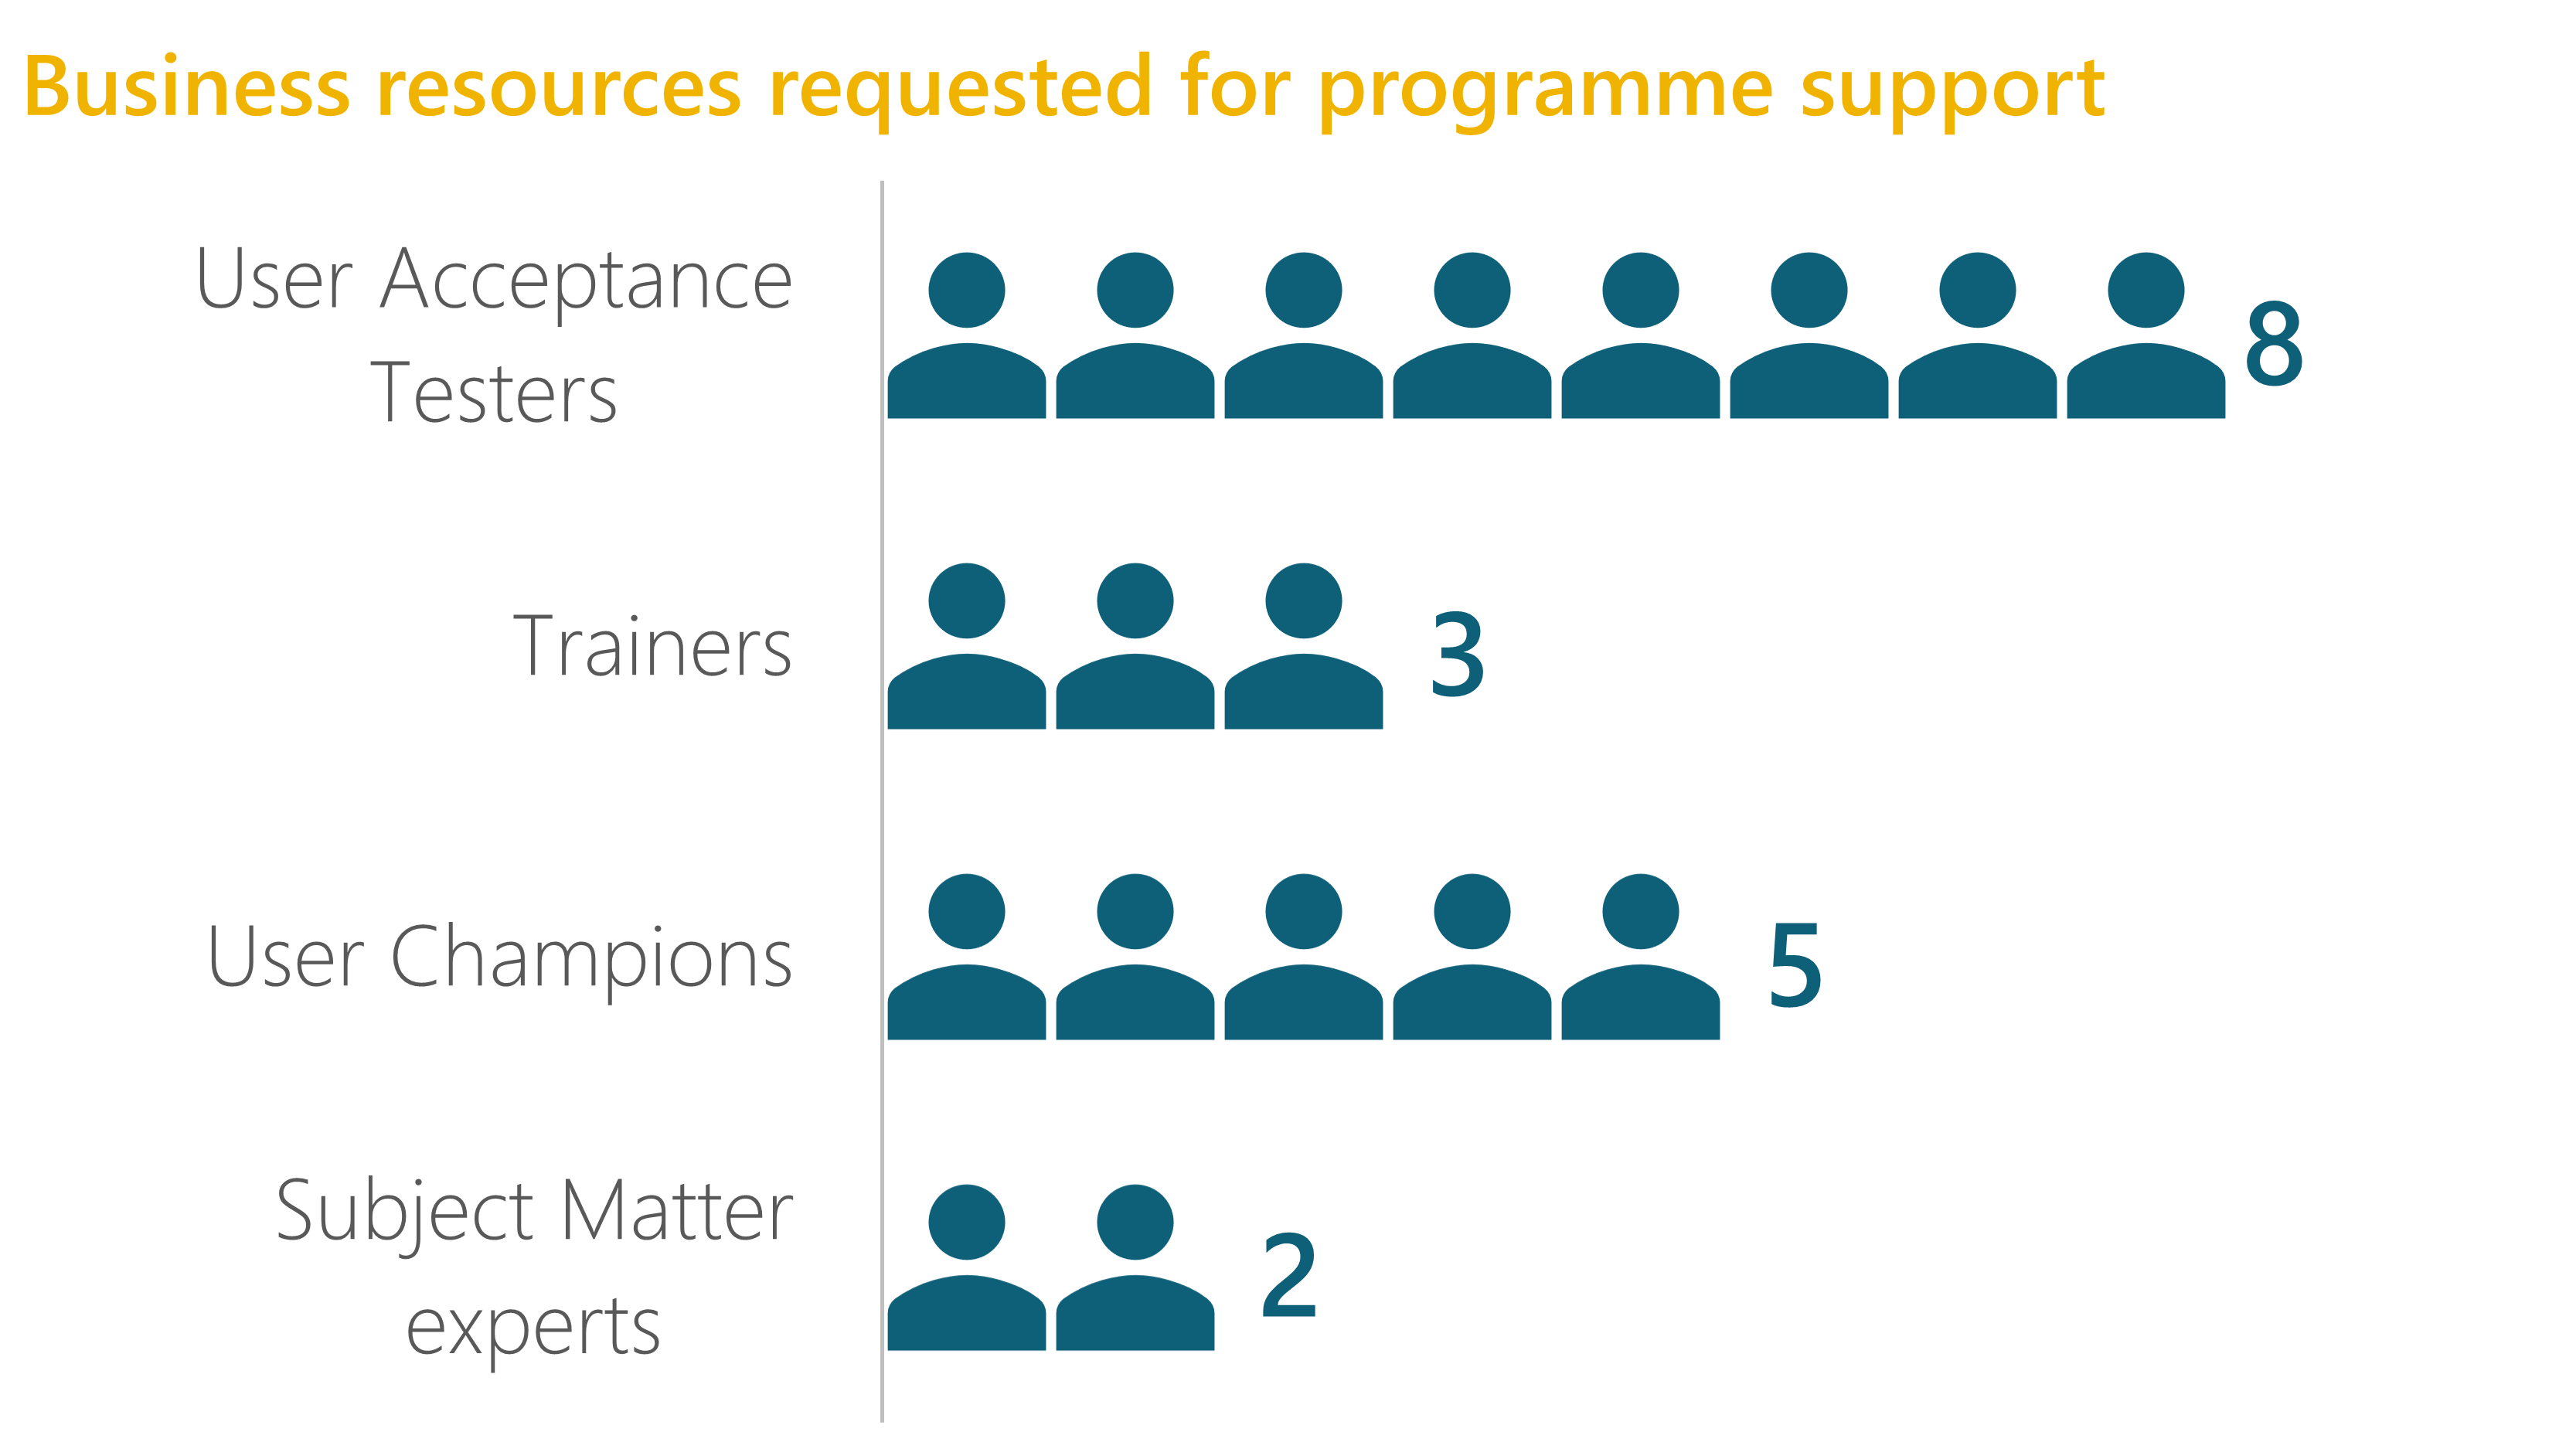 Bar chart indicating resources requested from business to support programme